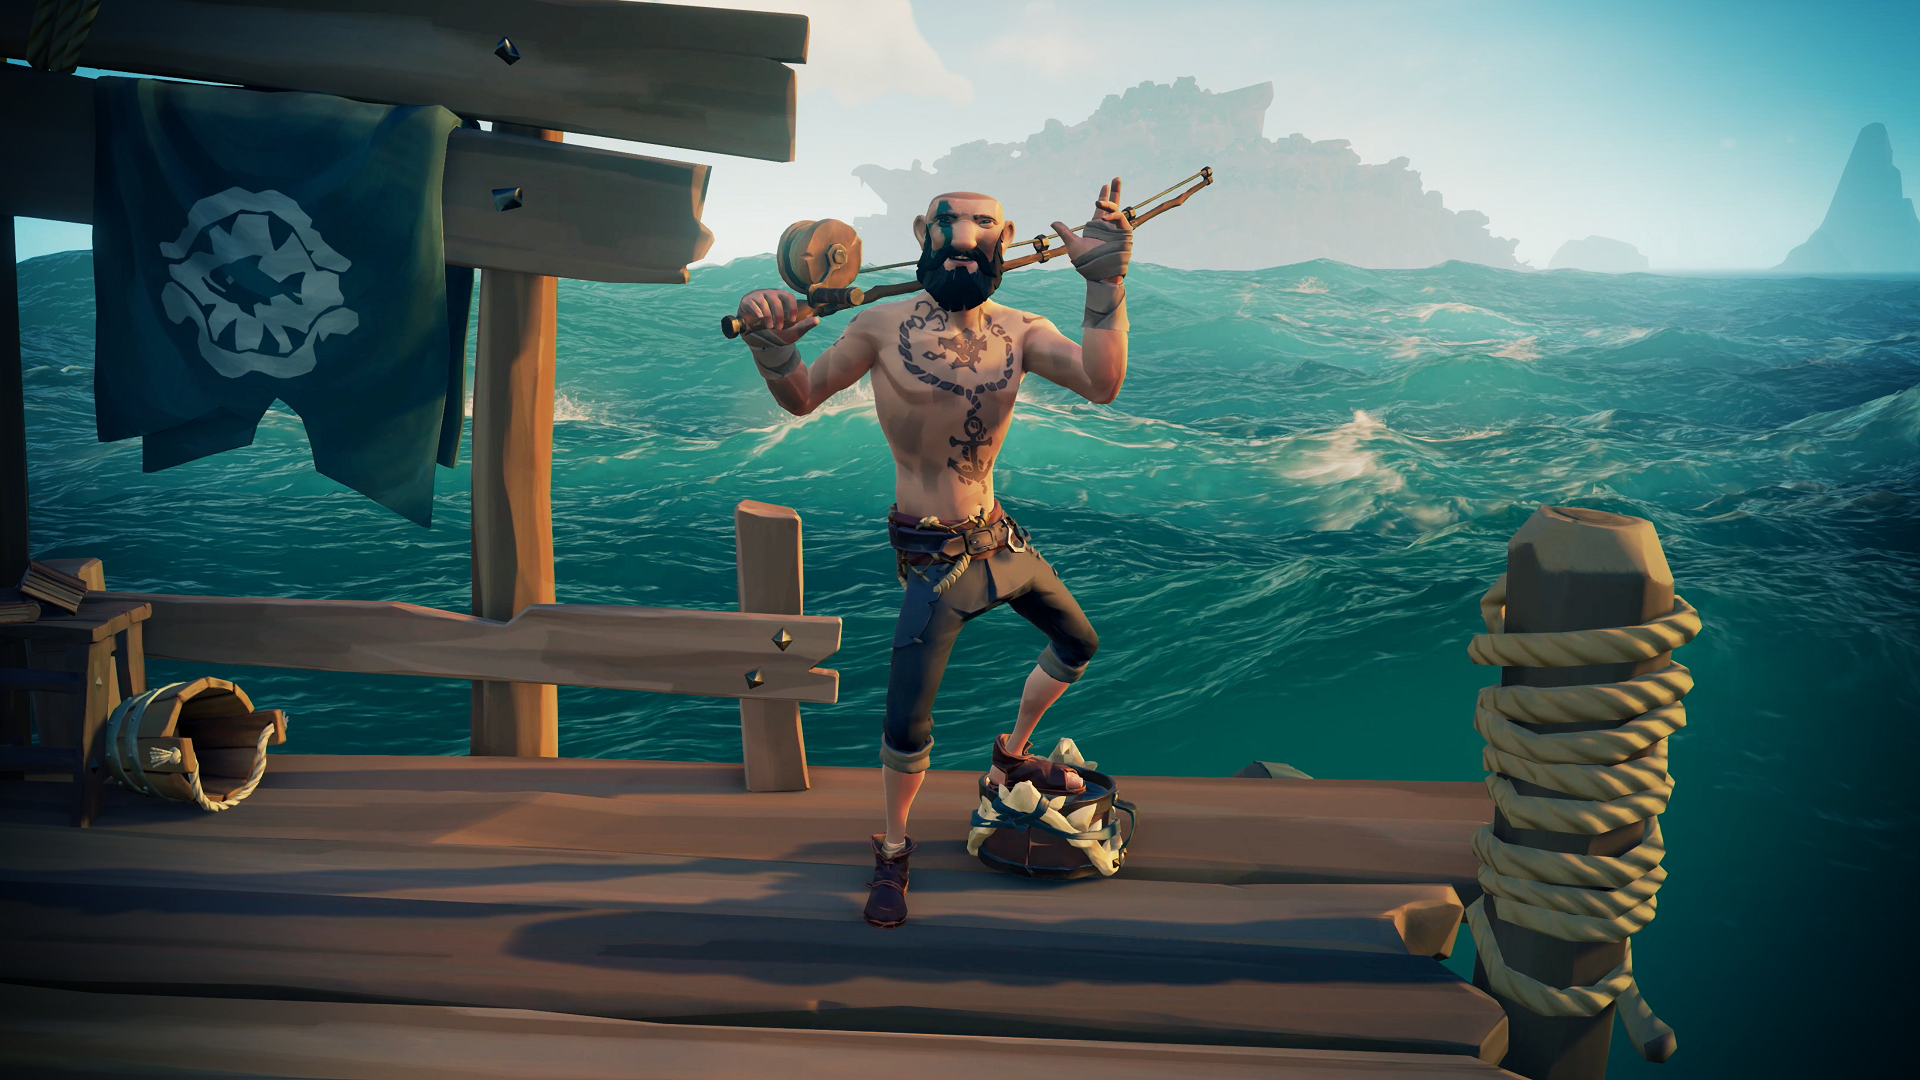 Another Pirate's Treasure